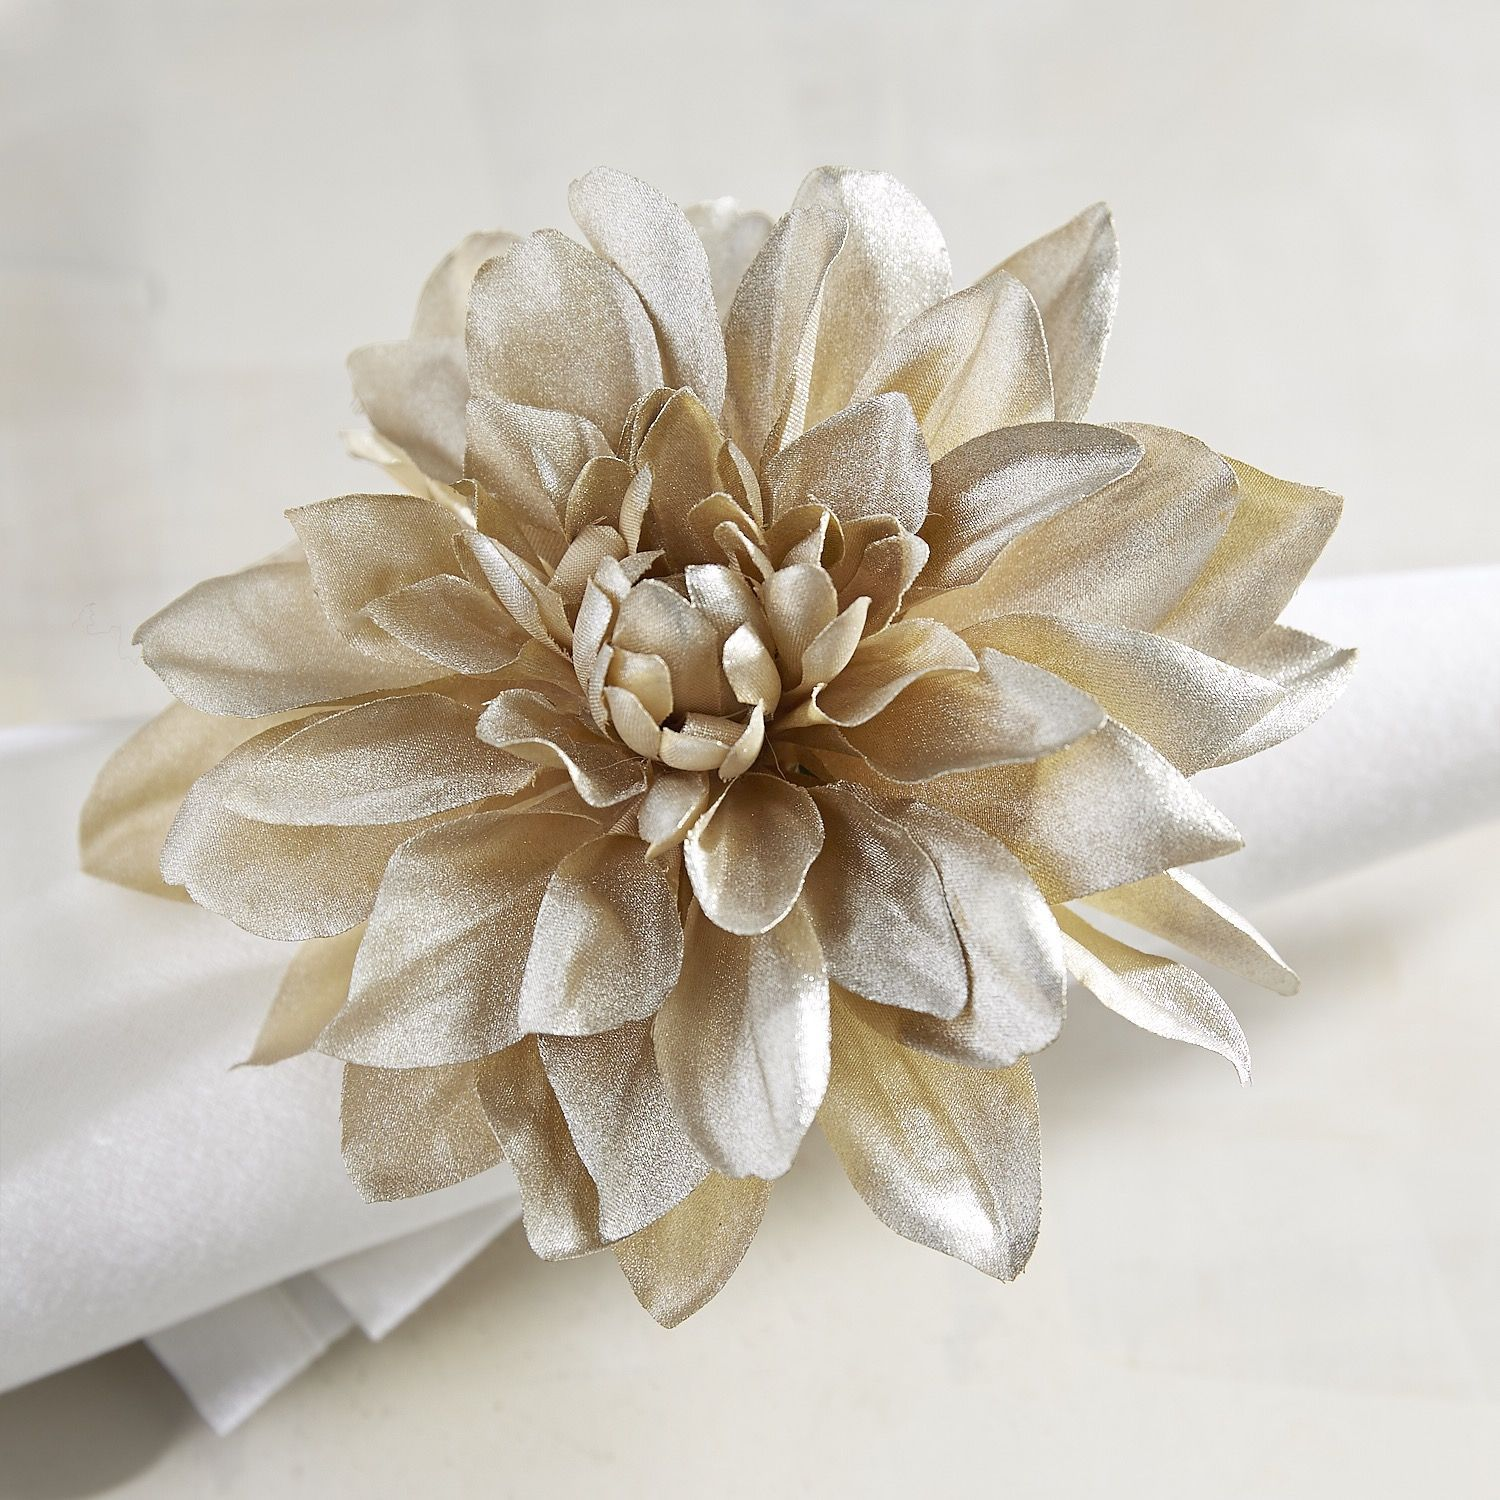 Champagne Dahlia Flower Napkin Ring Products Pinterest Napkin